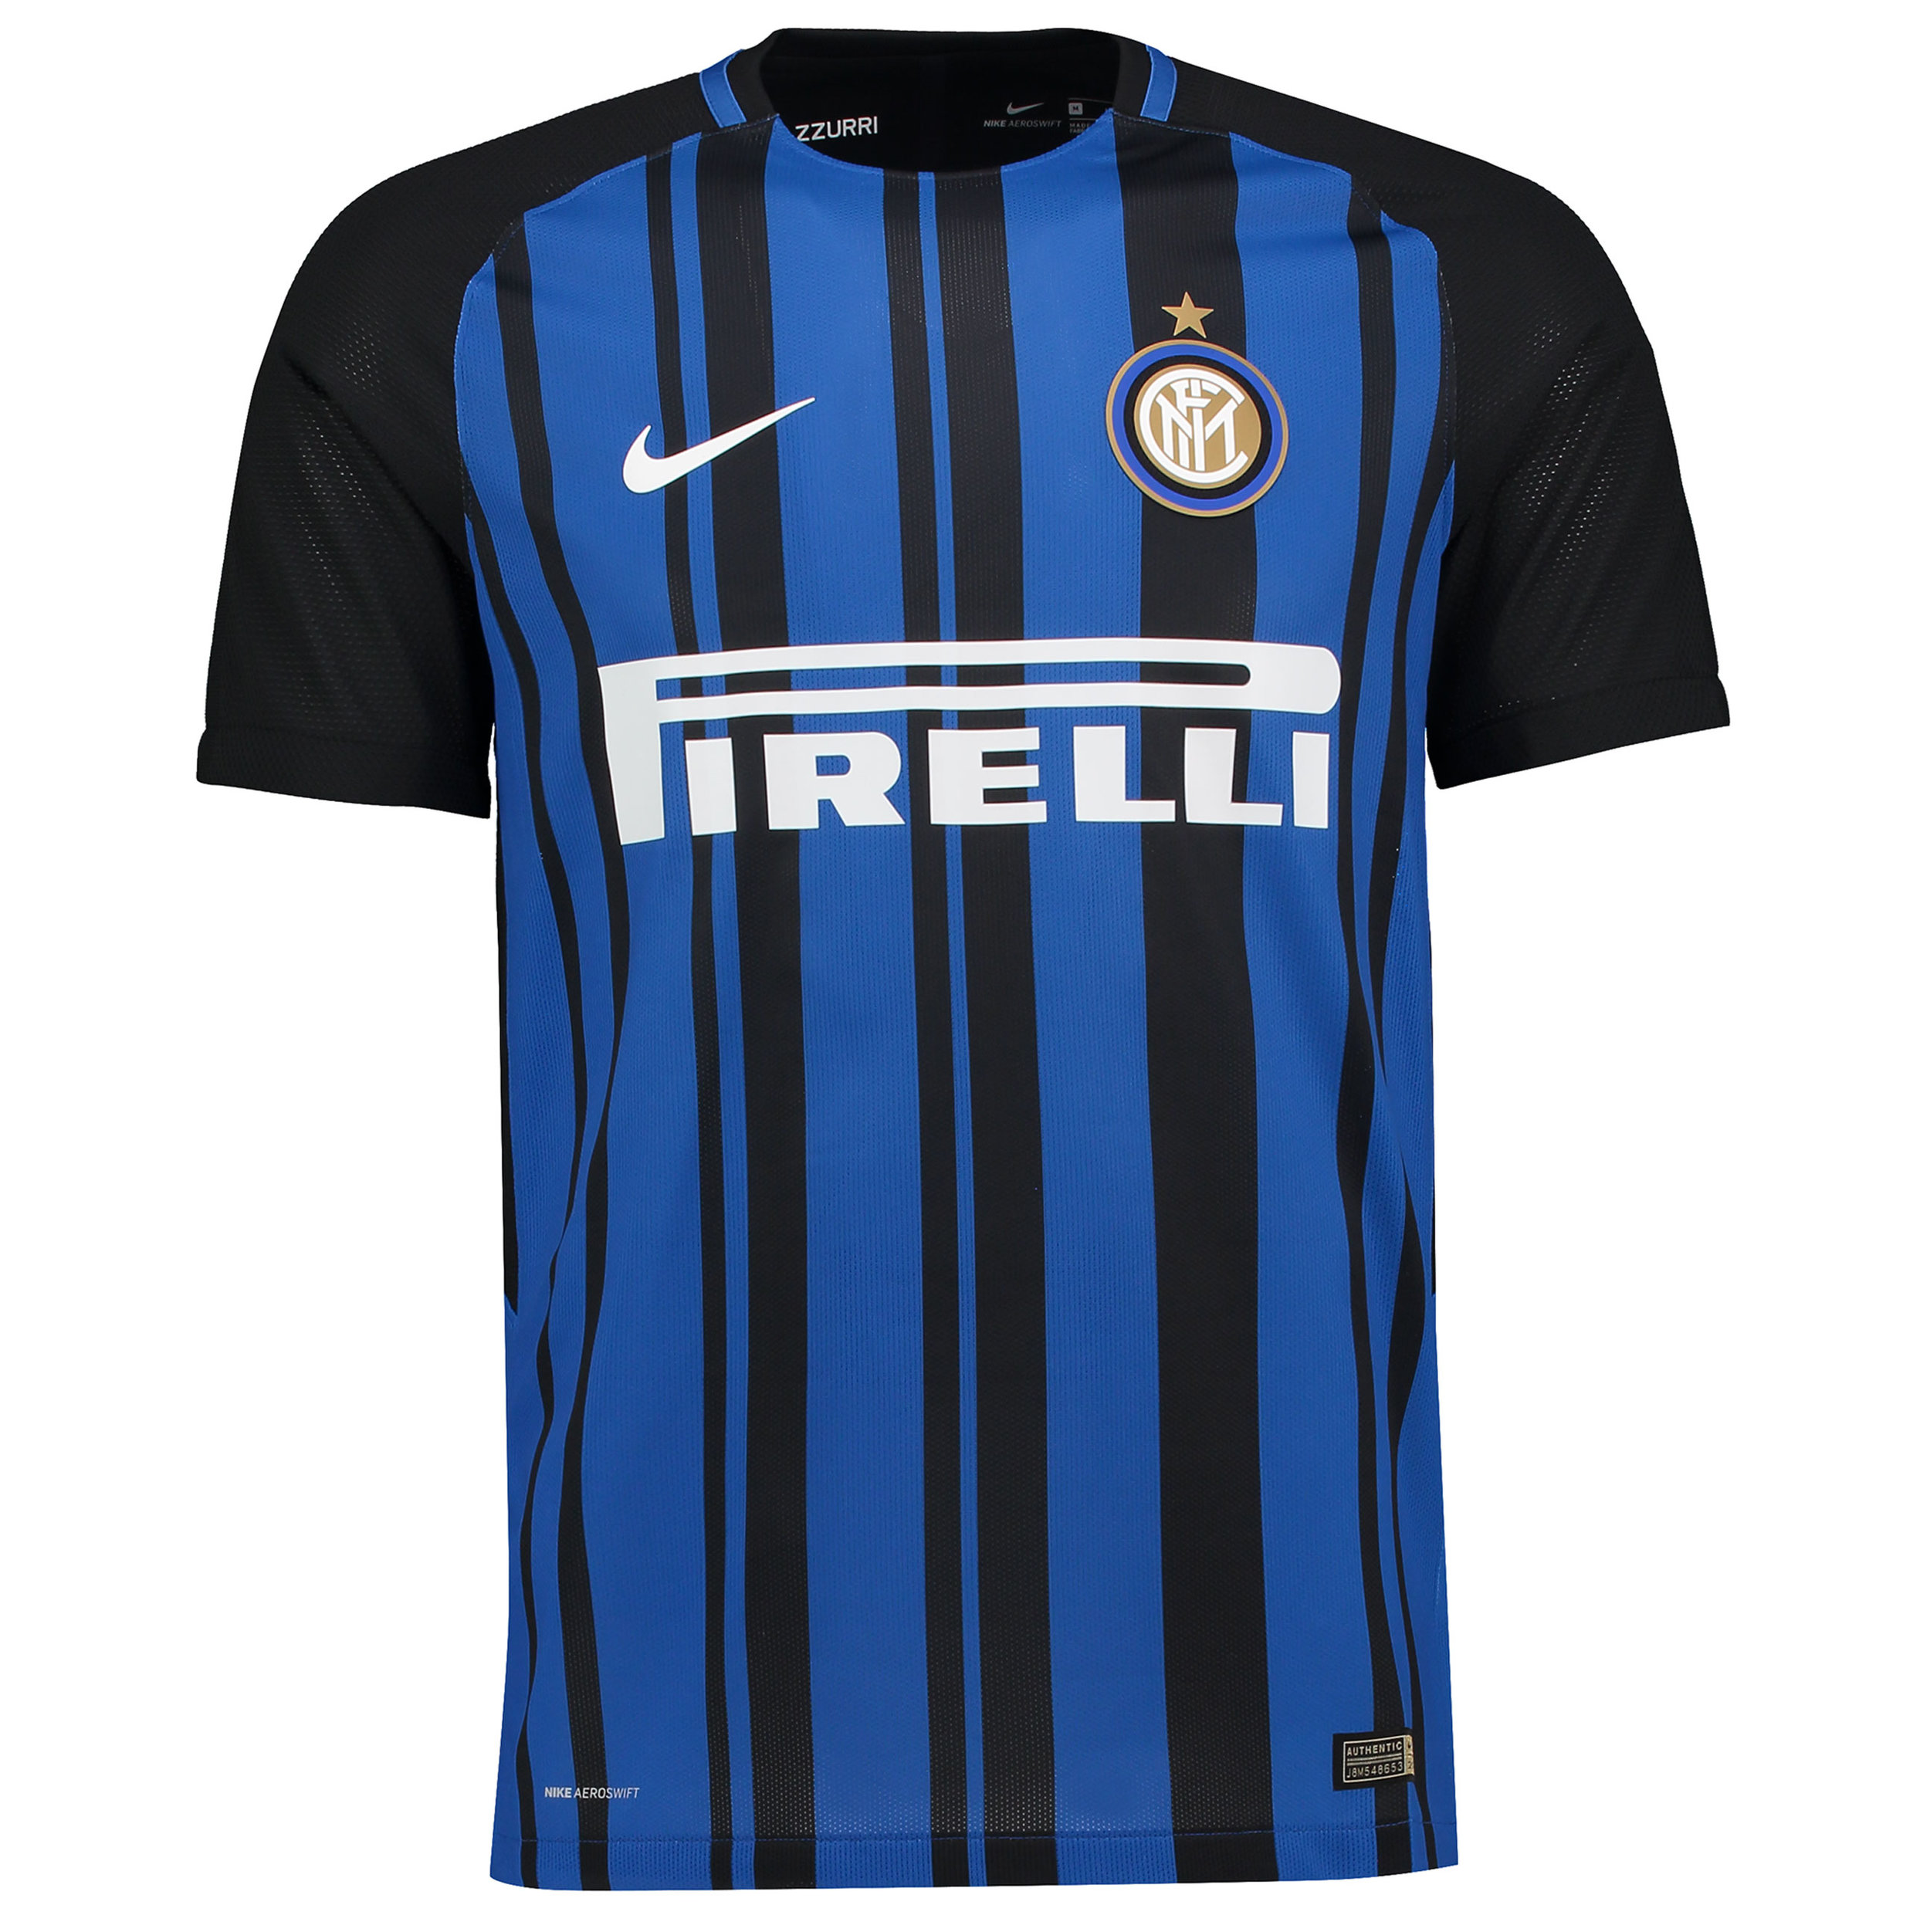 Inter Milan Home Shirt - 2017 (image courtesy of  Football Shirt Culture )